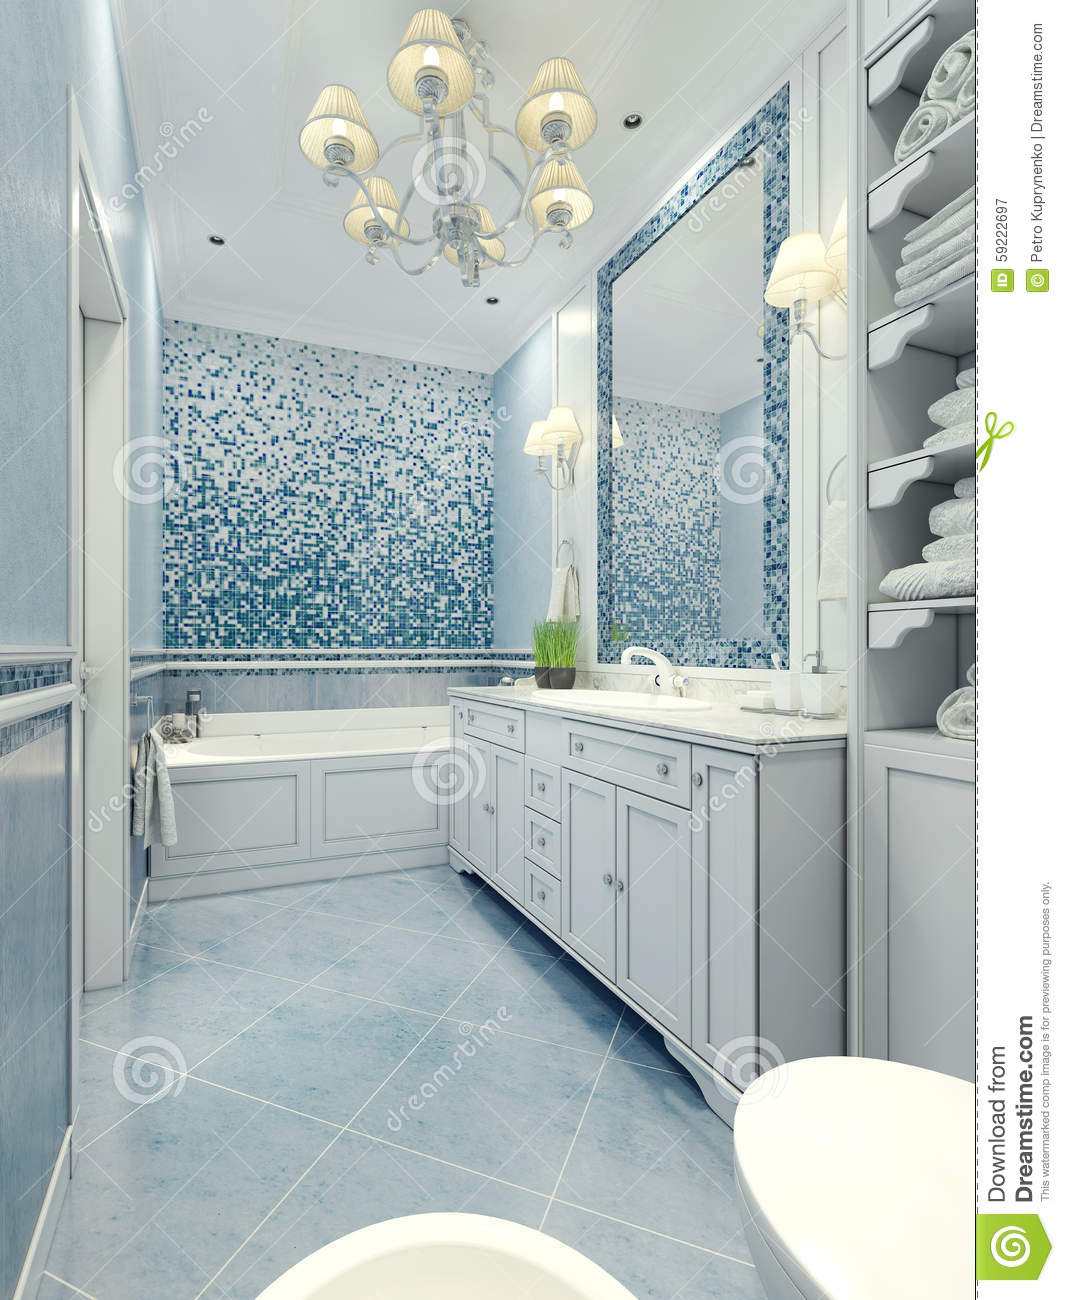 Bathroom Art Deco Style Stock Image. Image Of Expensive